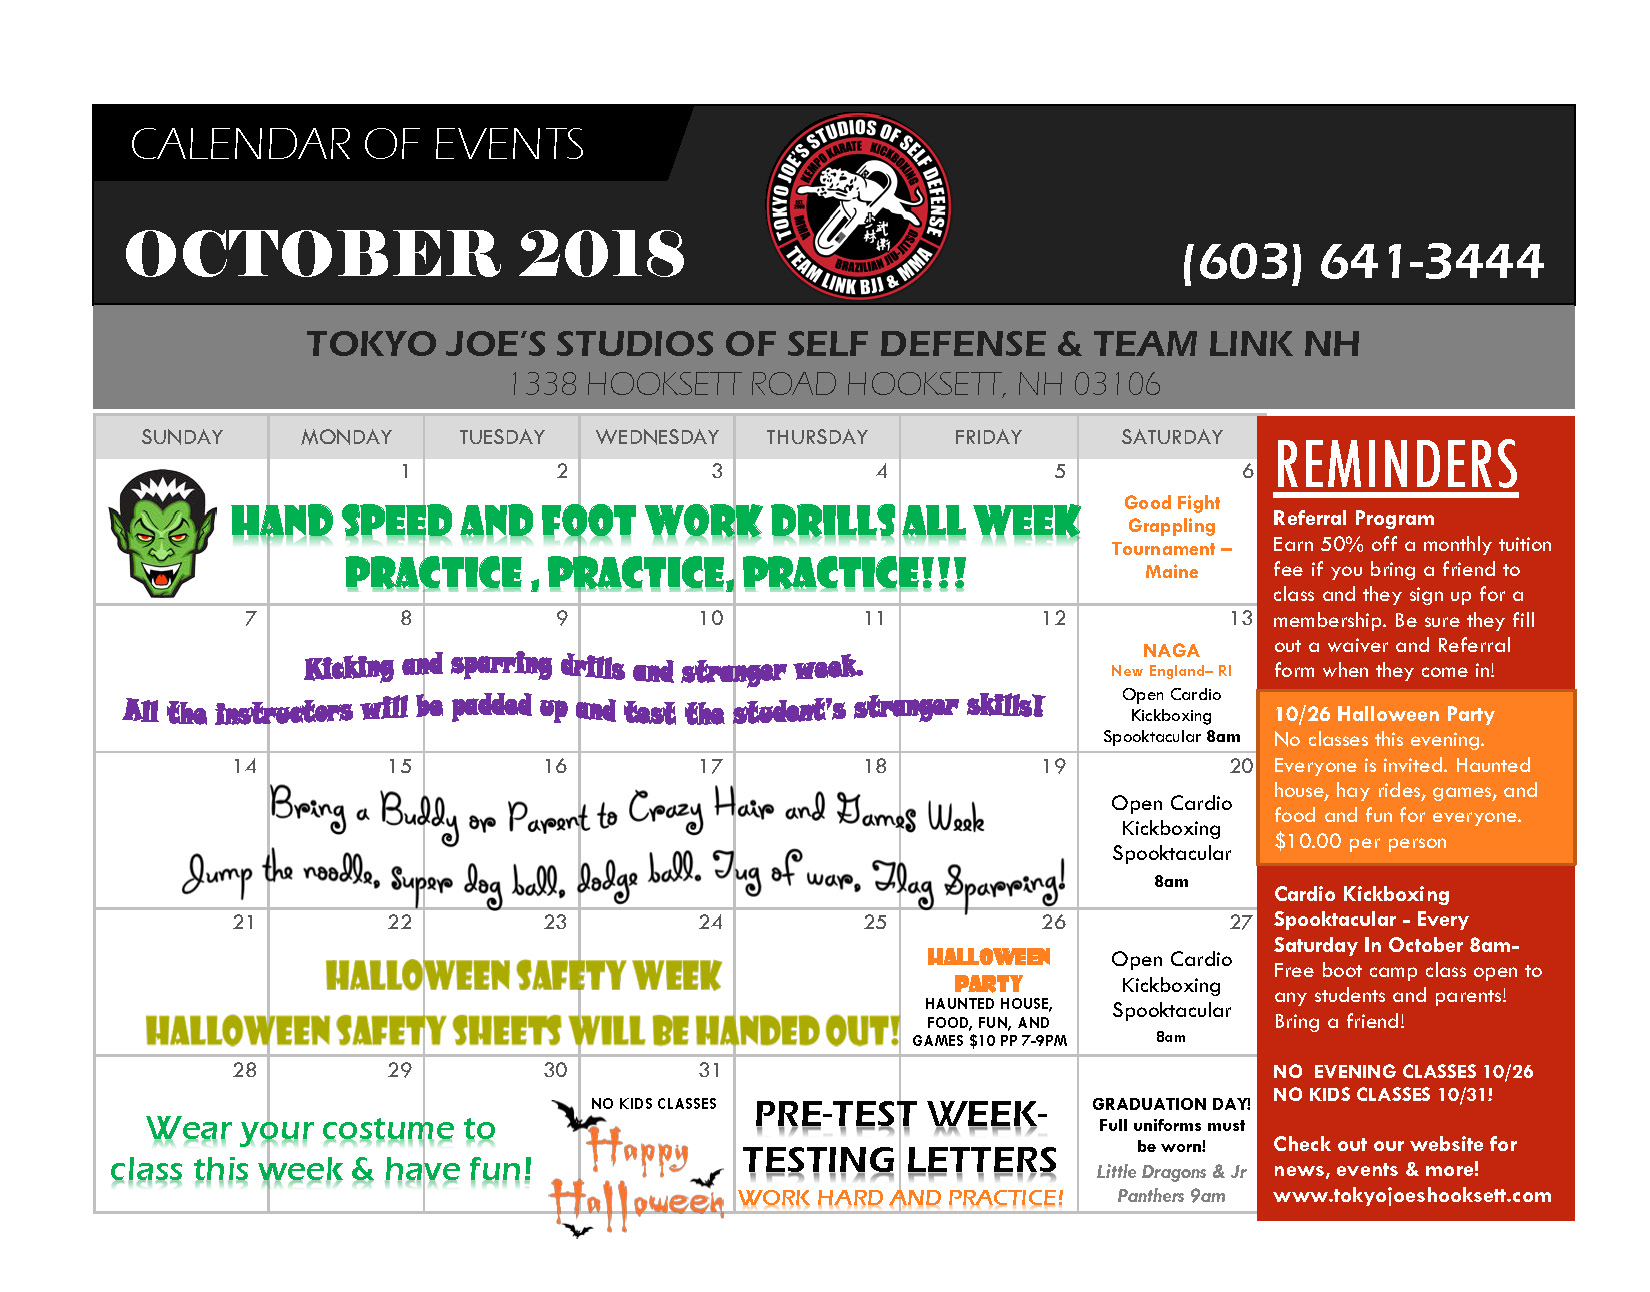 OCTOBER EVENTS CALENDAR!